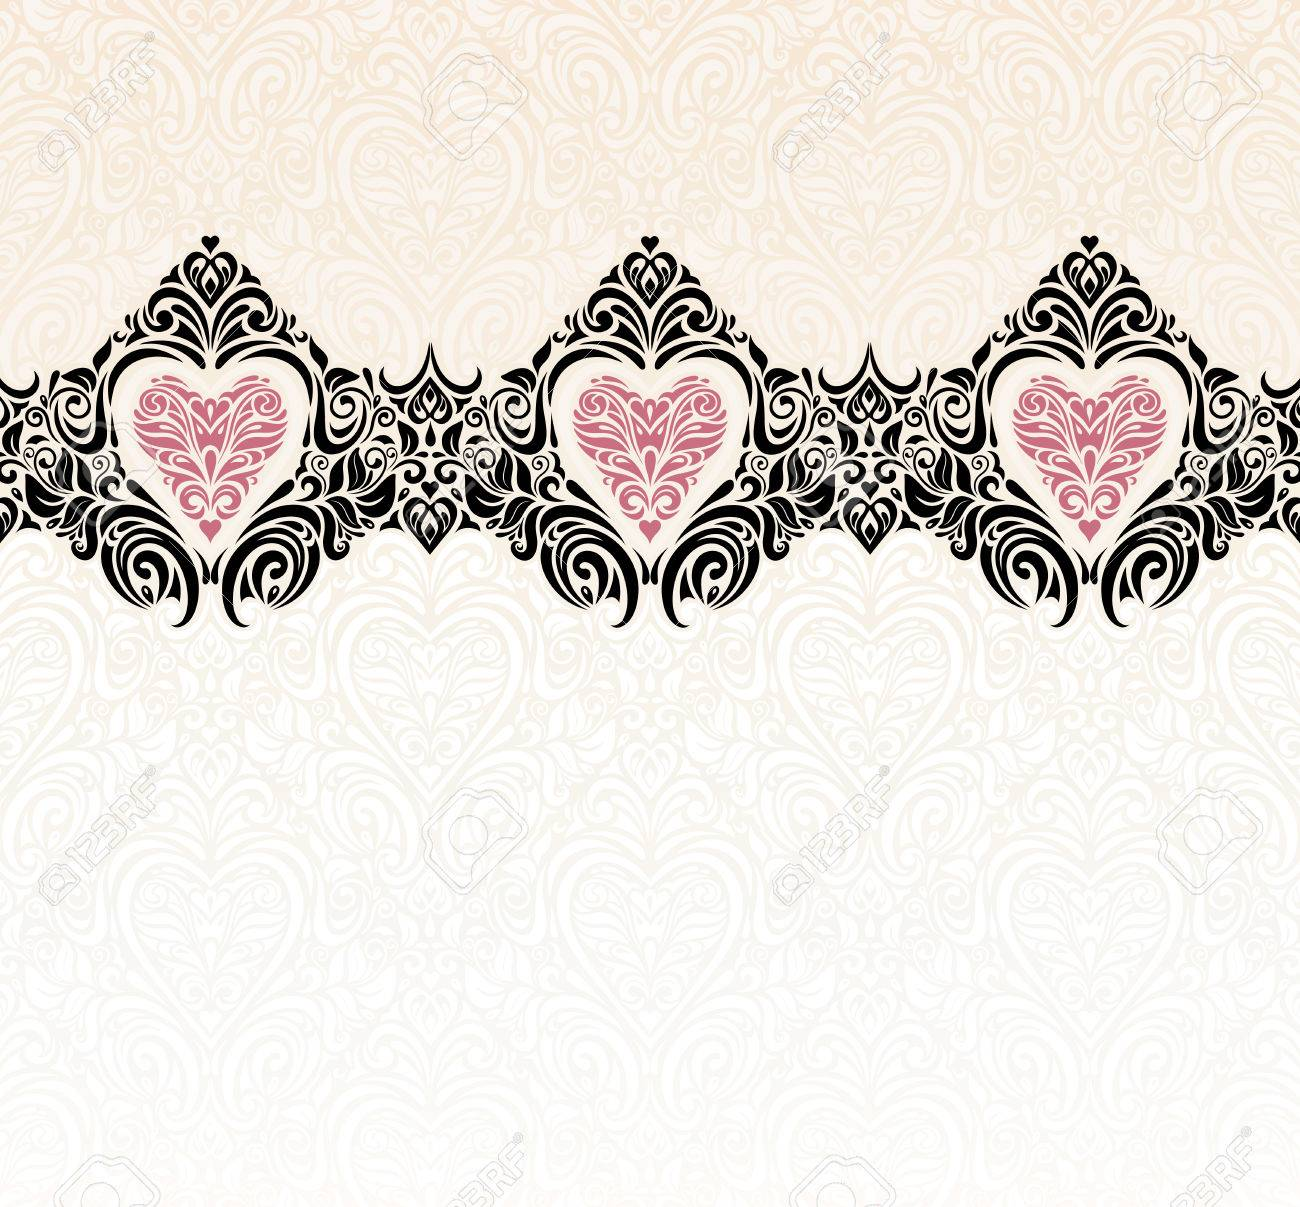 vintage wedding ecru black modern invitation wallpaper background royalty free cliparts vectors and stock illustration image 36480589 vintage wedding ecru black modern invitation wallpaper background